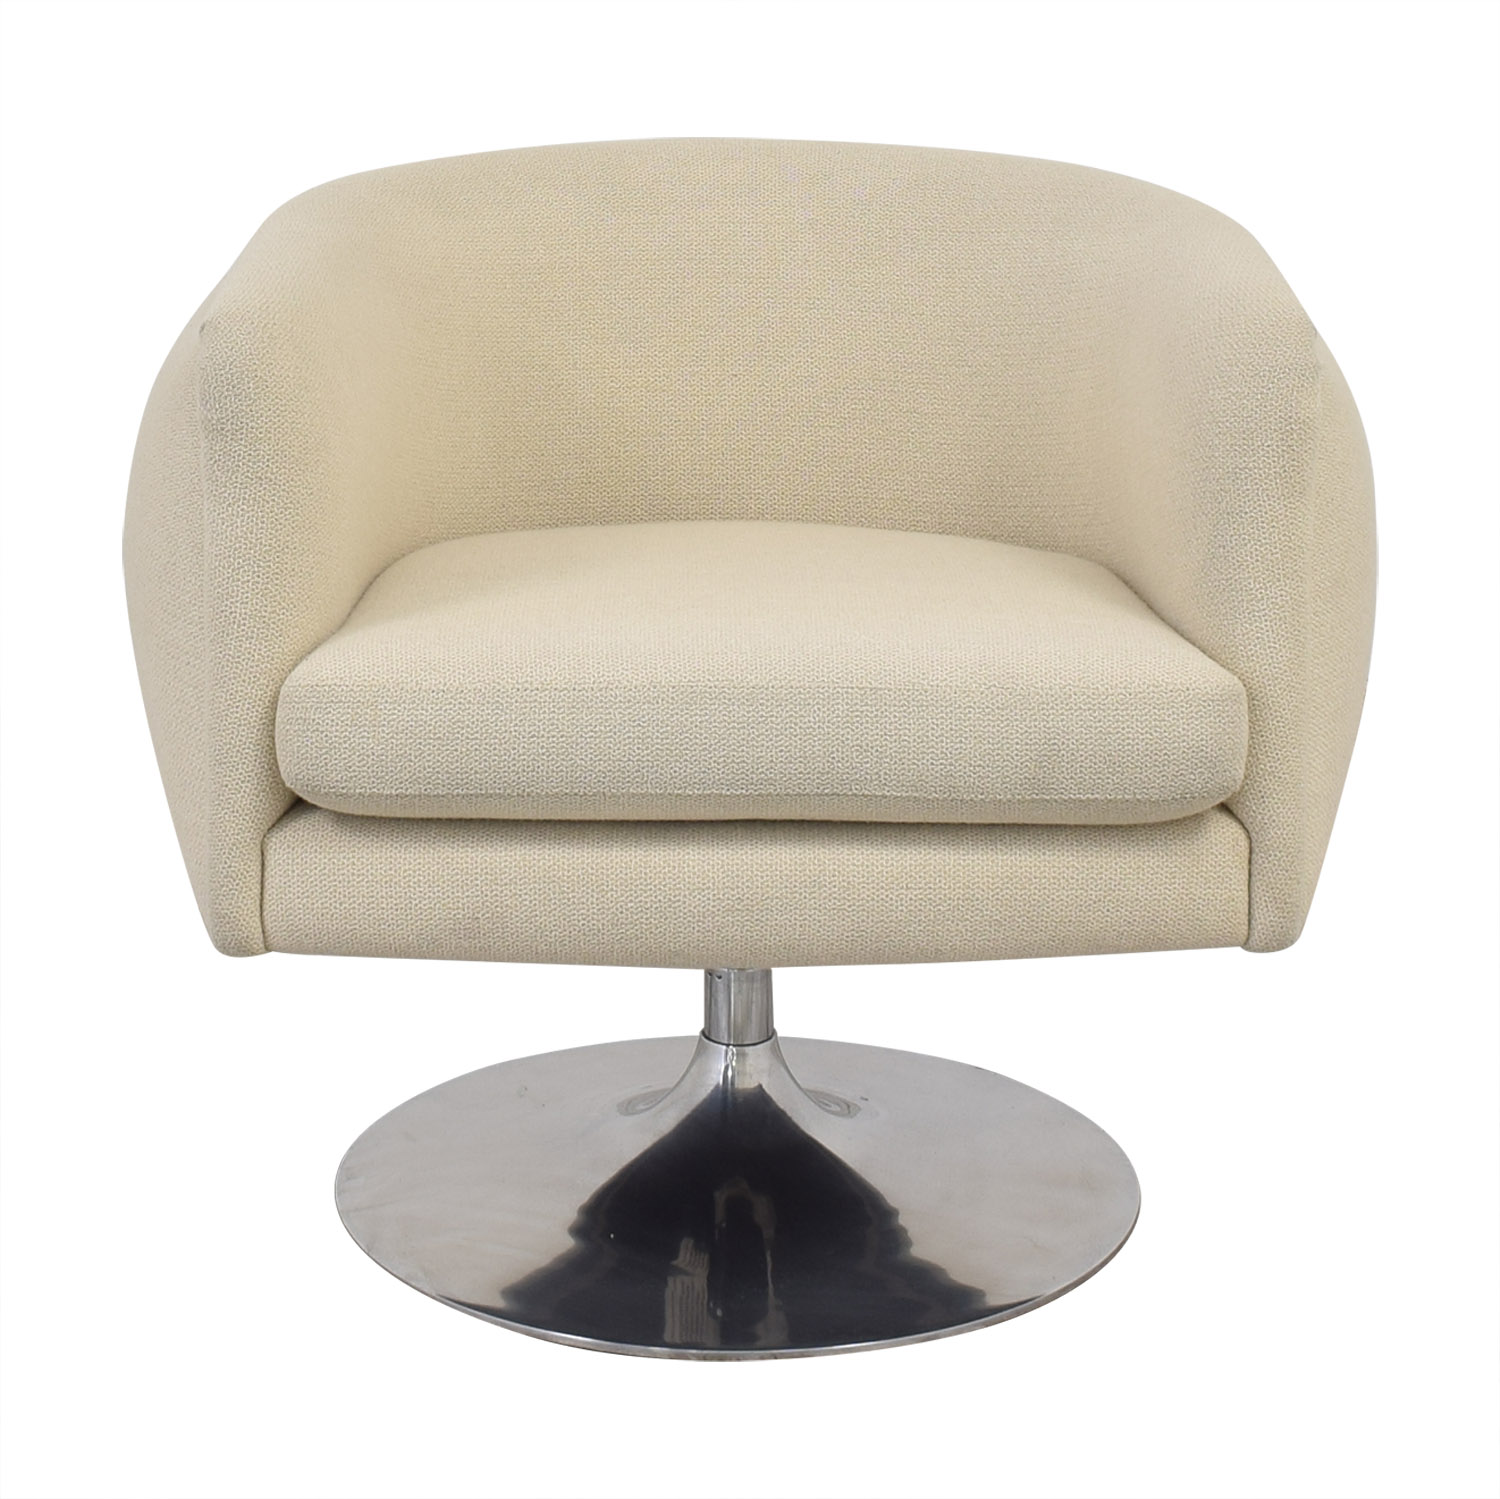 Knoll Knoll D'Urso Swivel Chair coupon